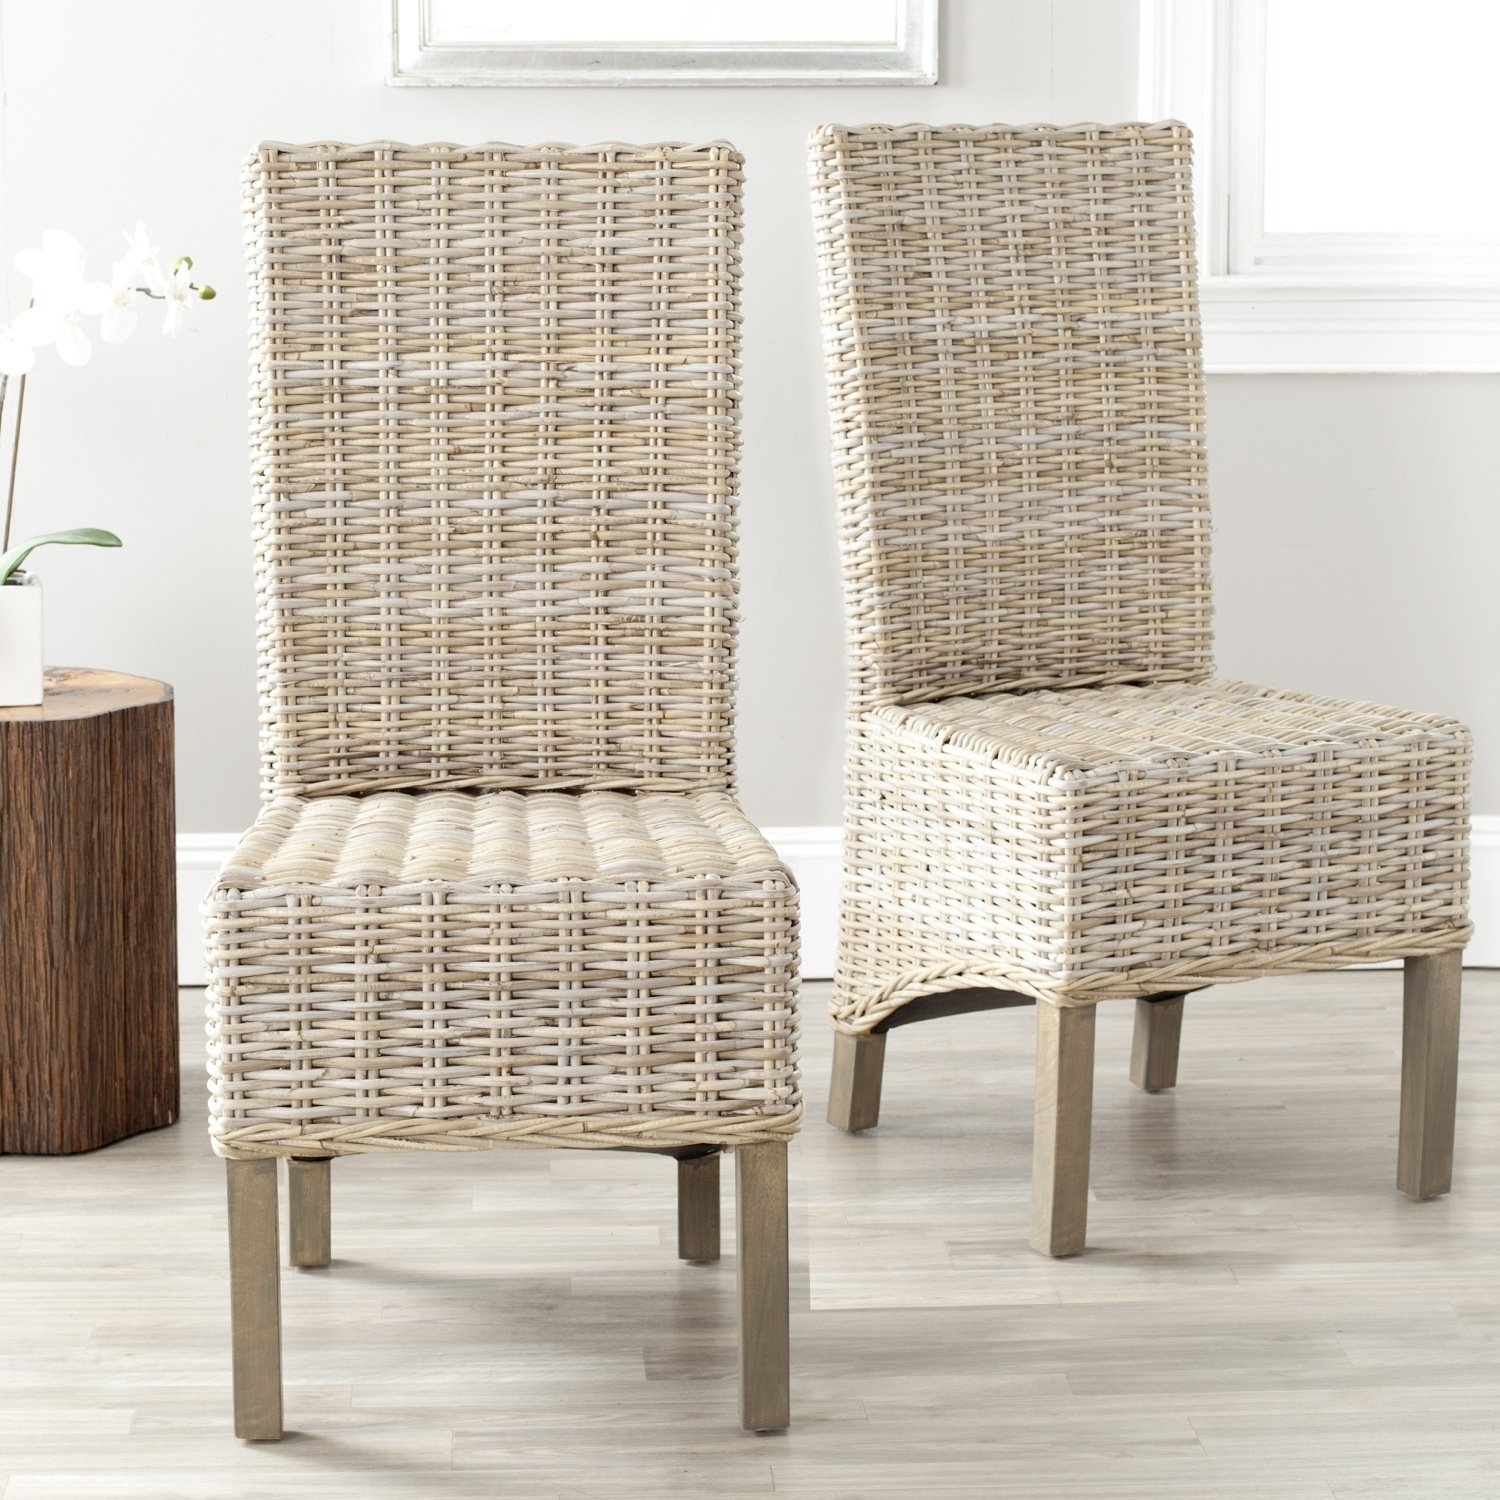 Amazon Safavieh Home Collection Pembrooke Wicker Side Chairs Antique Grey Set Of 2 Kitchen Dining